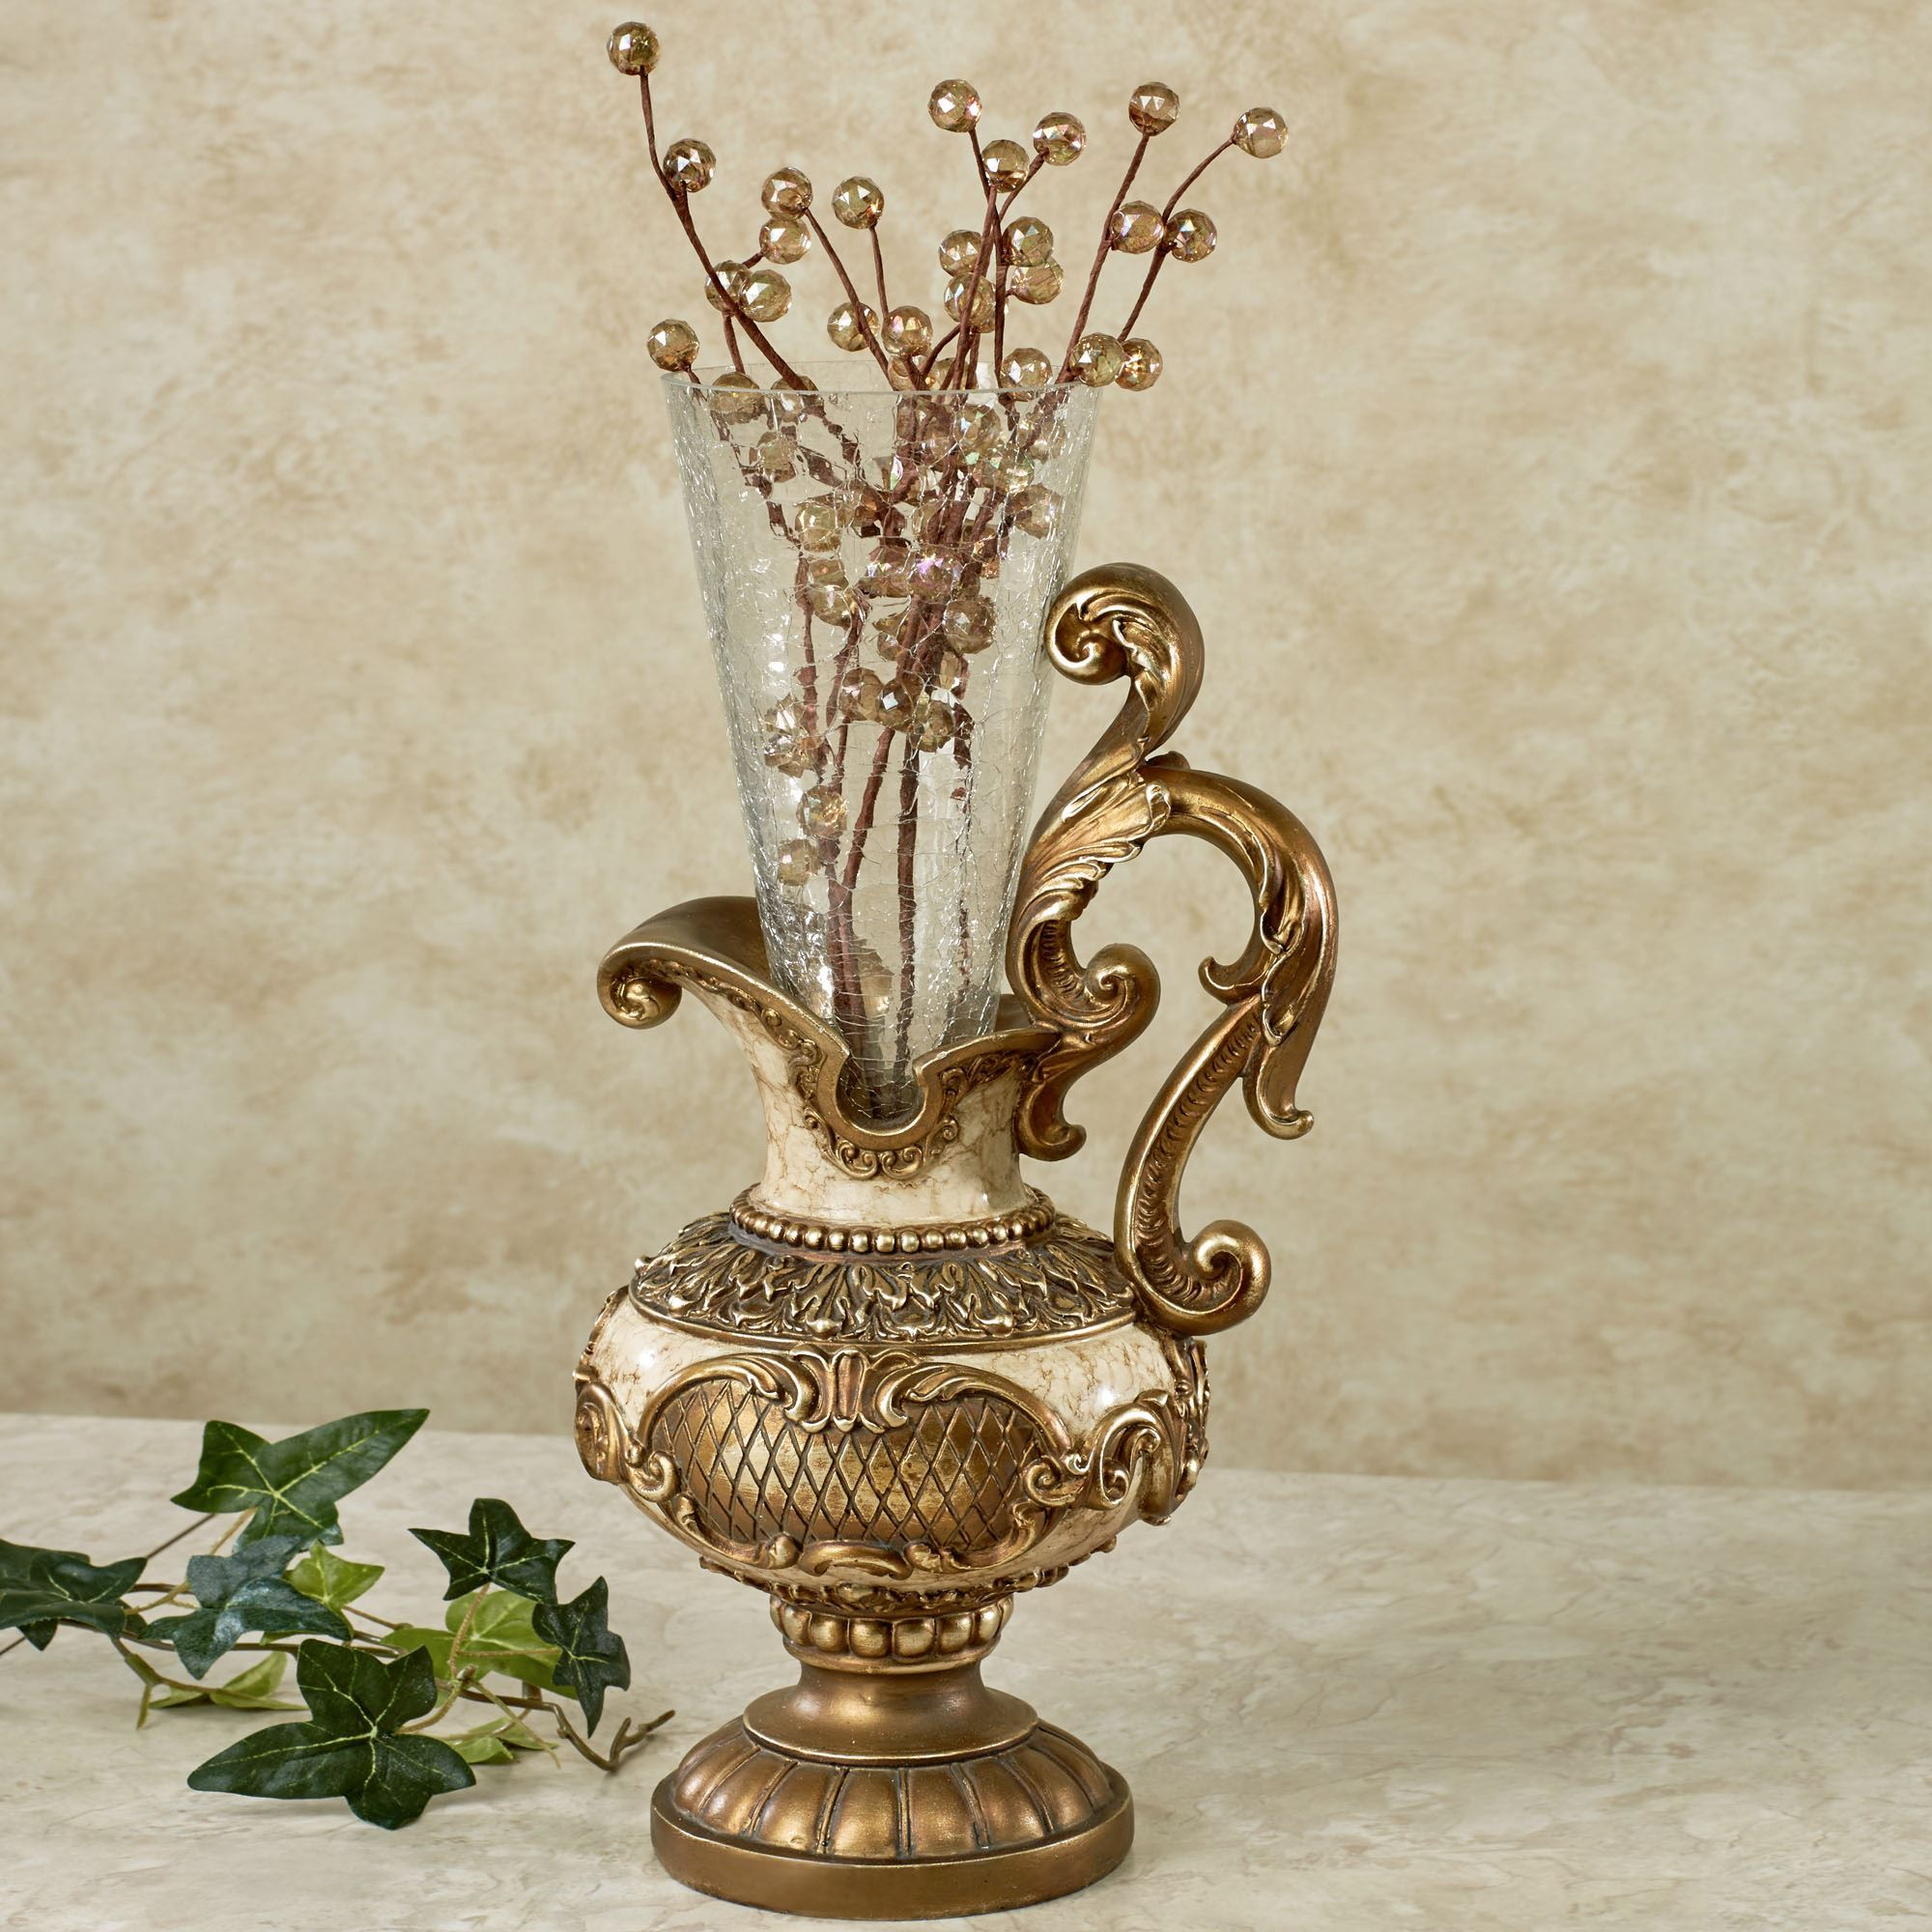 Table vases floor vases decorative jars touch of class arellia table vase with glass holder reviewsmspy